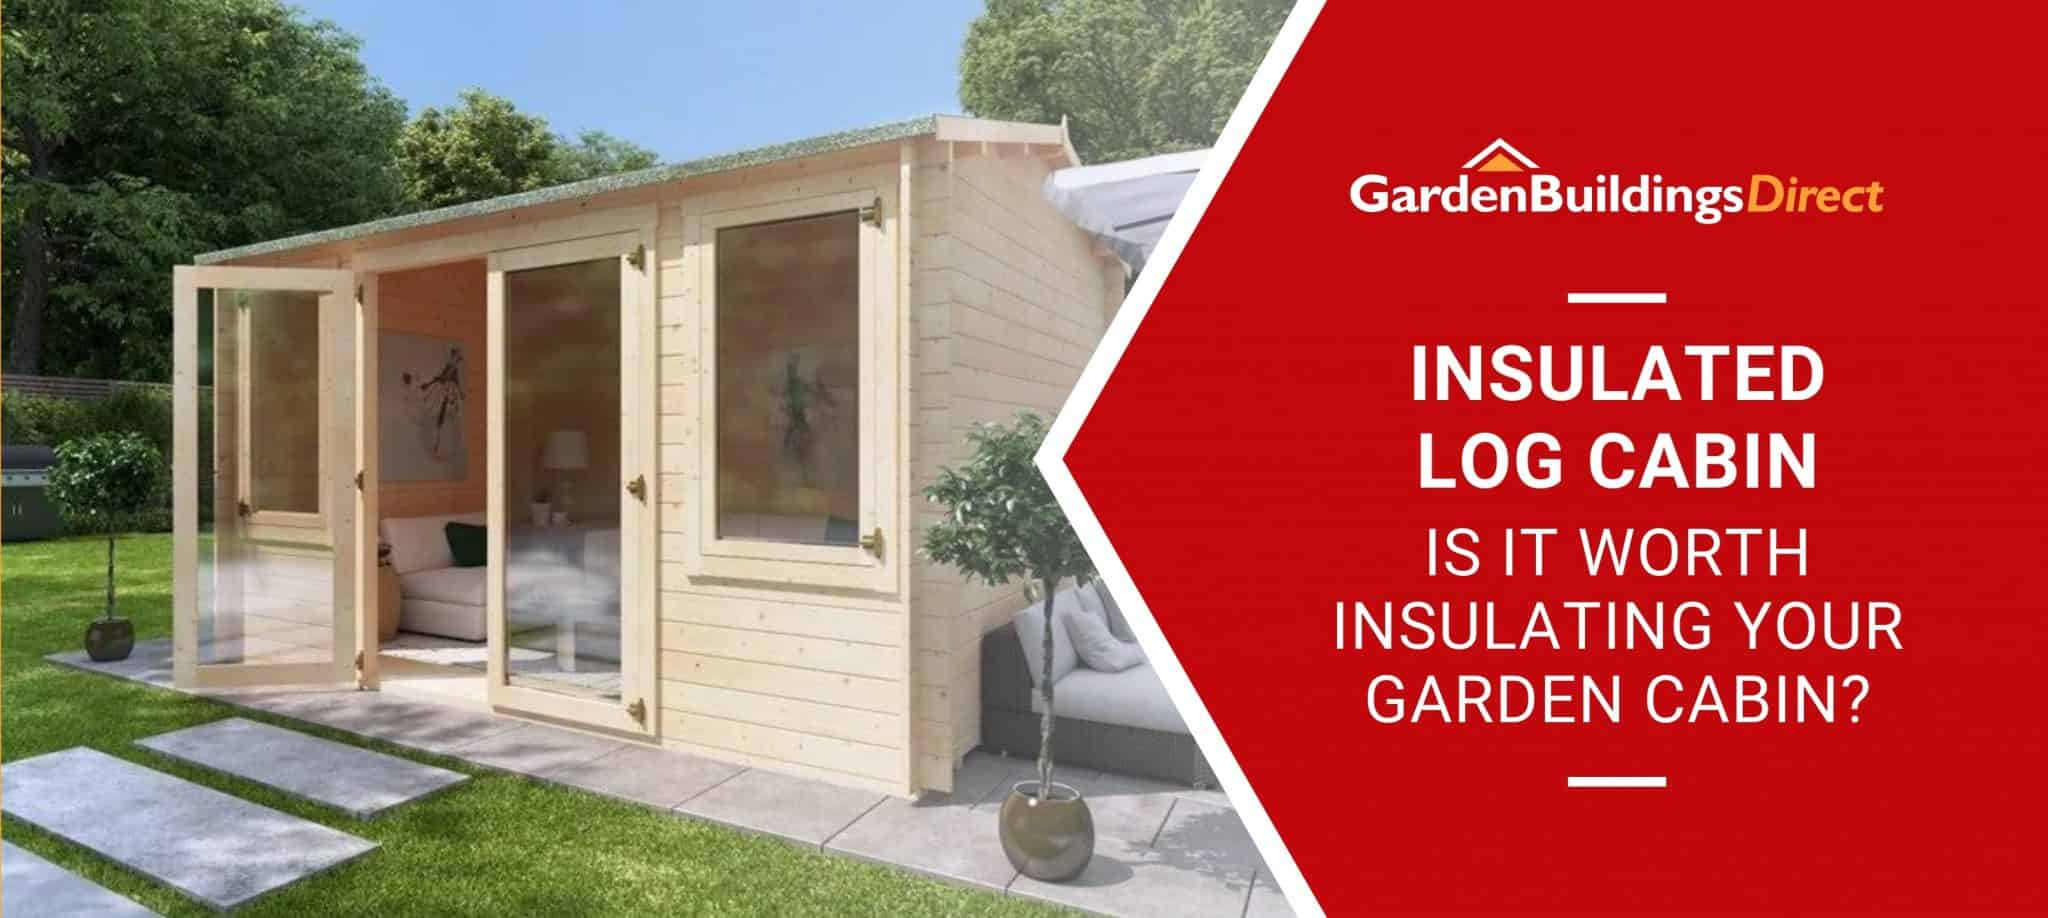 'Is It Worth Insulating Your Garden Cabin' with a log cabin on a patio in the background and garden buildings direct logo on a red arrow banner